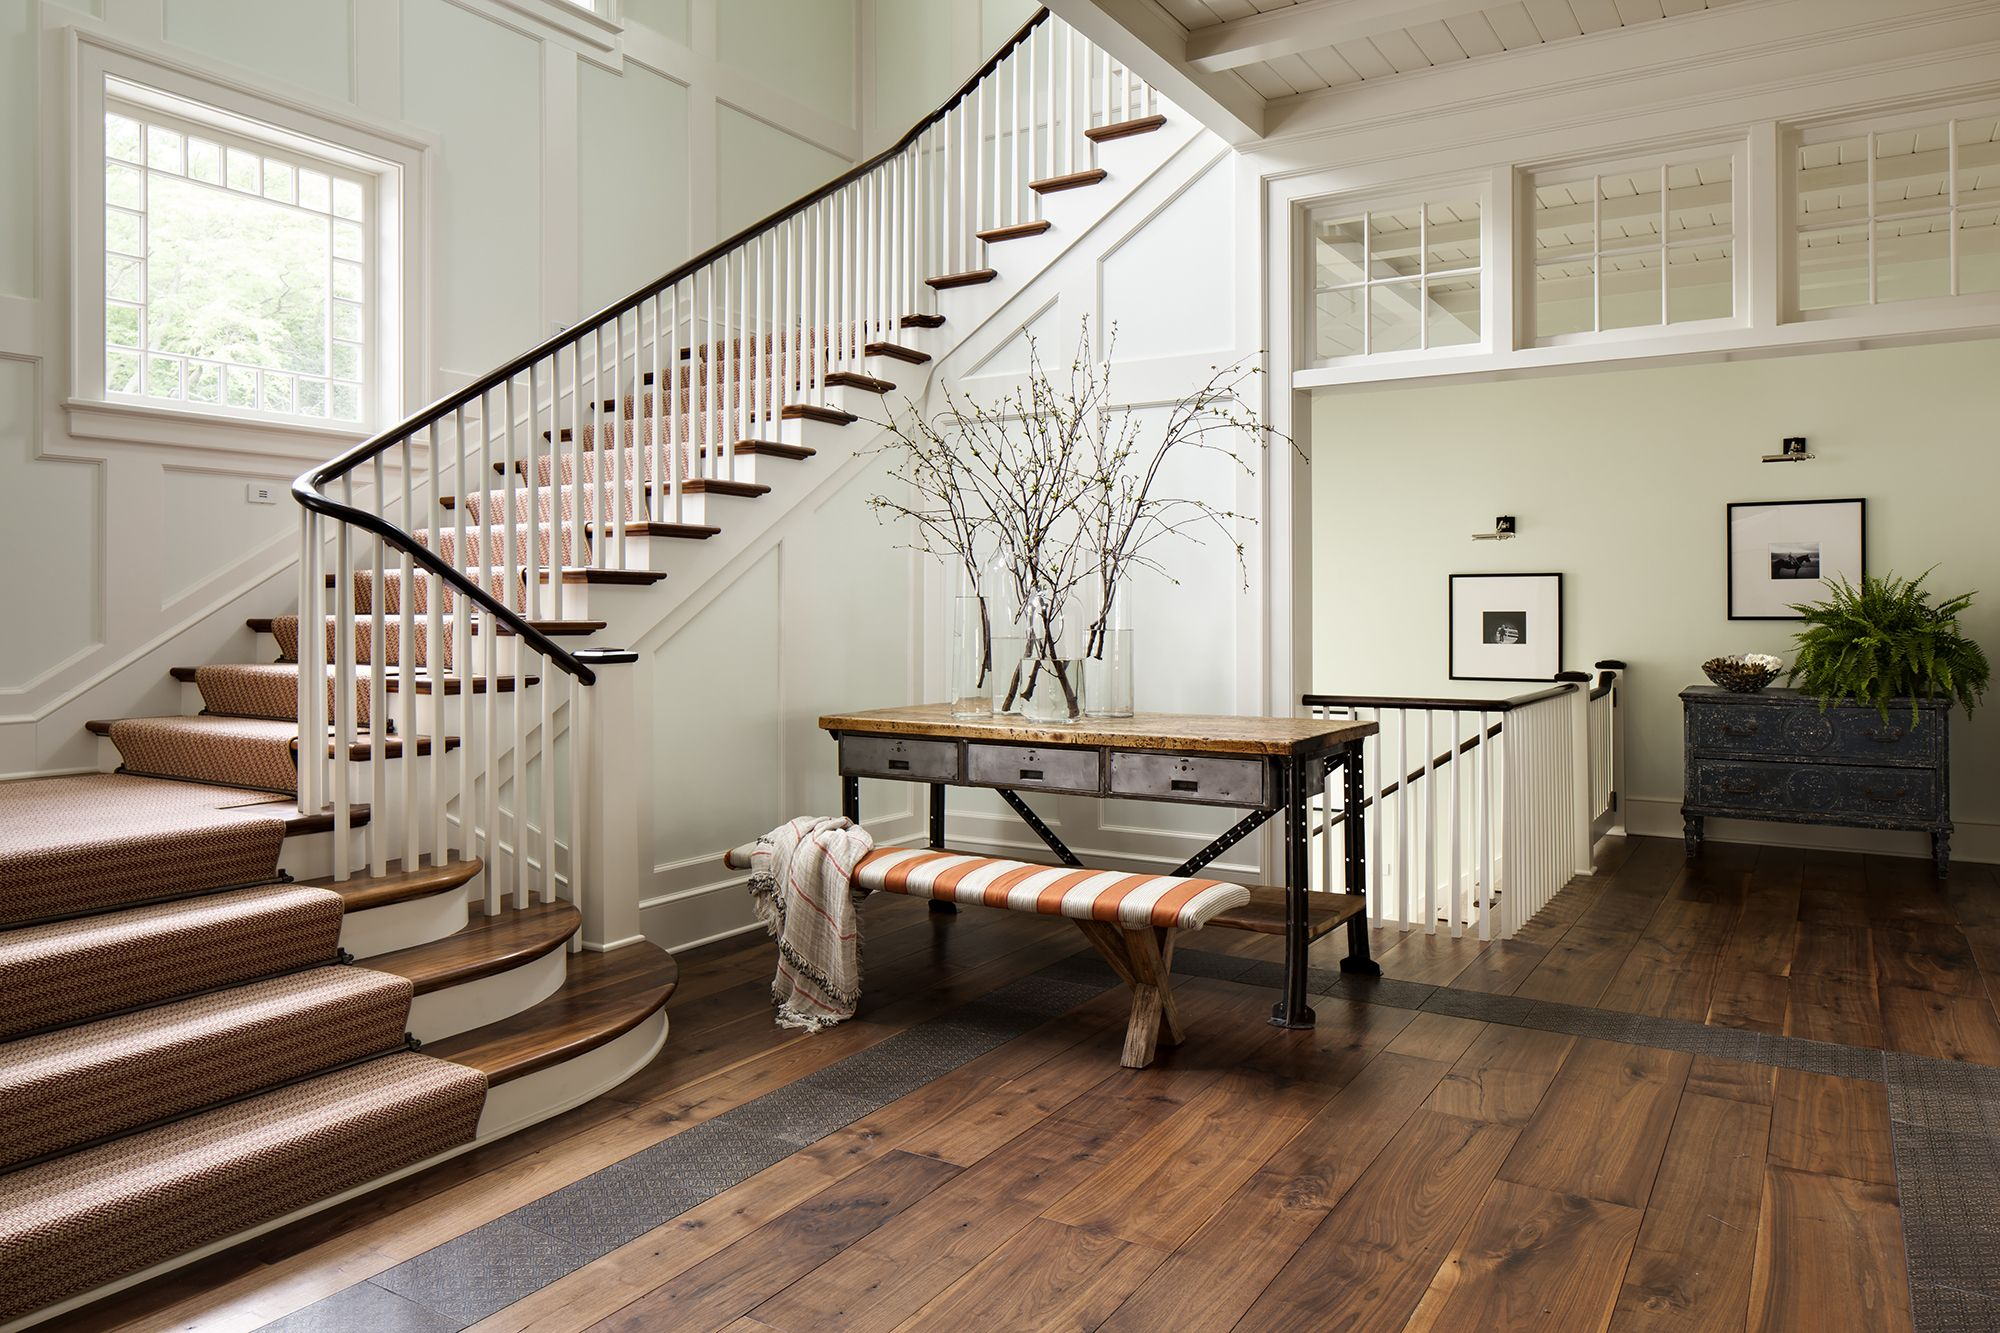 27 Stylish Staircase Decorating Ideas How To Decorate